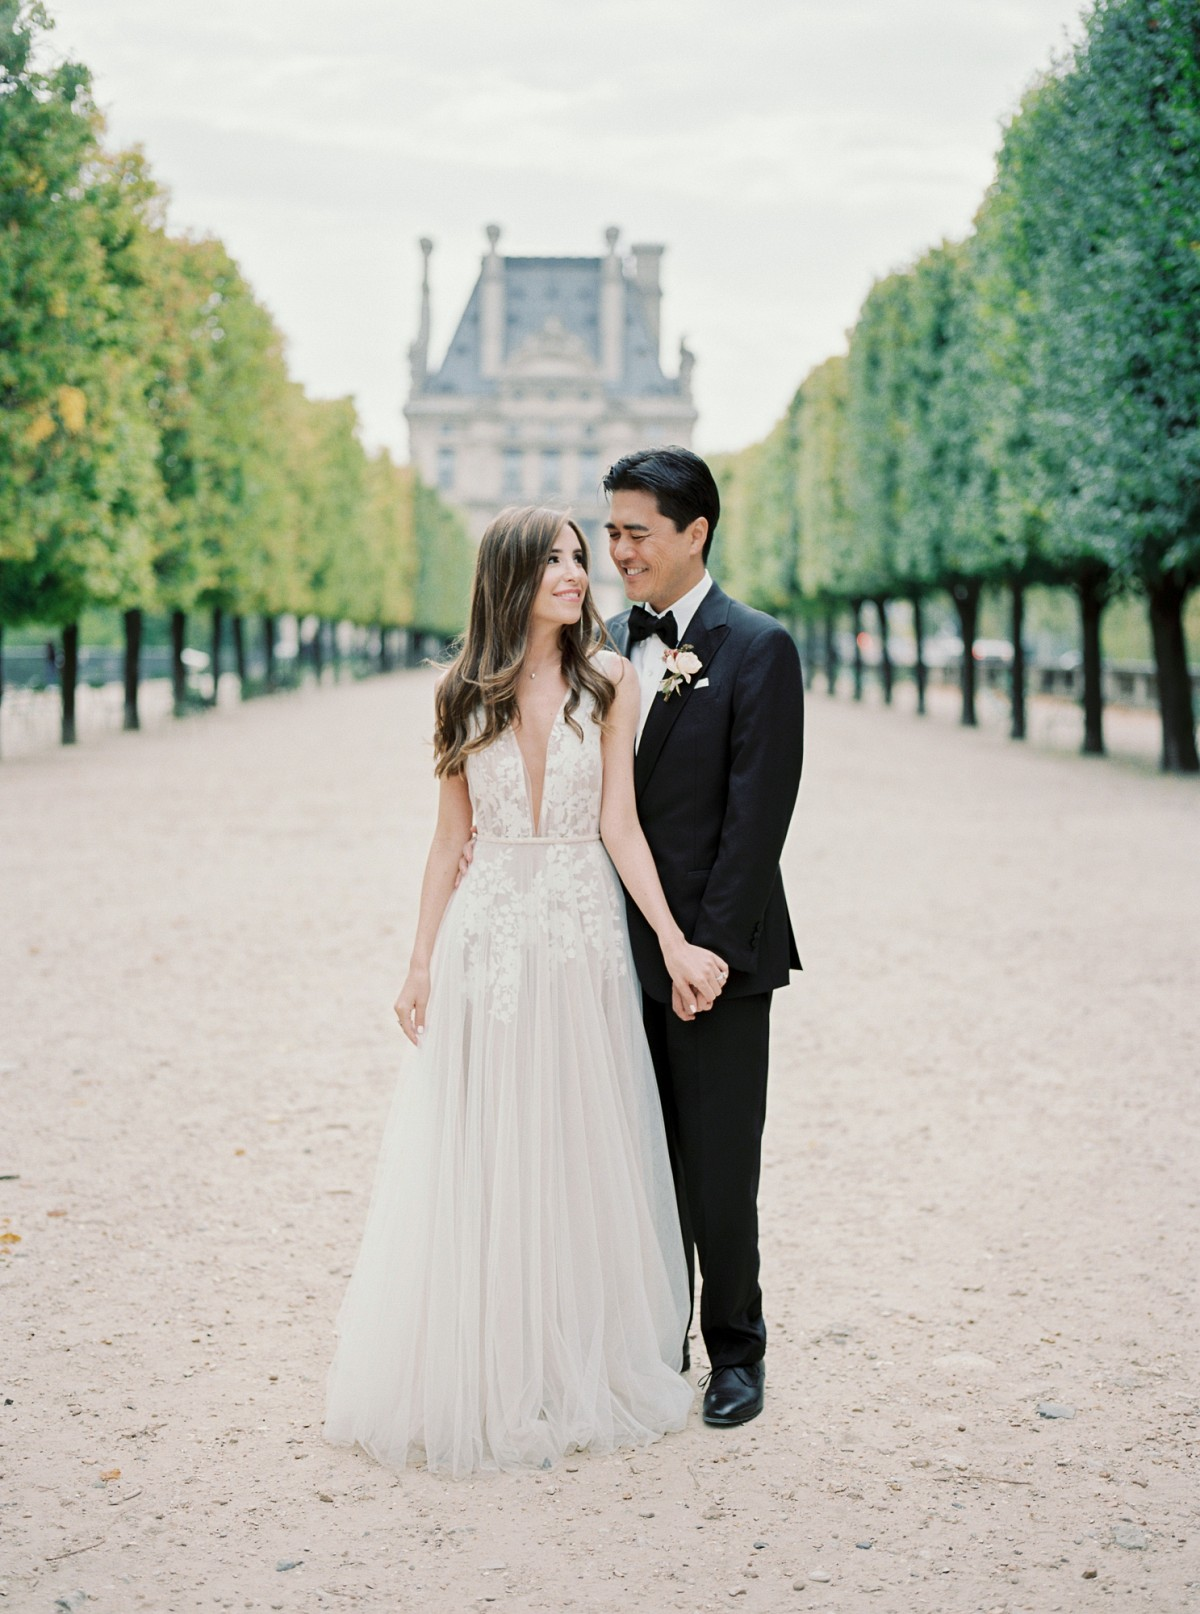 Eloping in Paris - Always a Good Idea